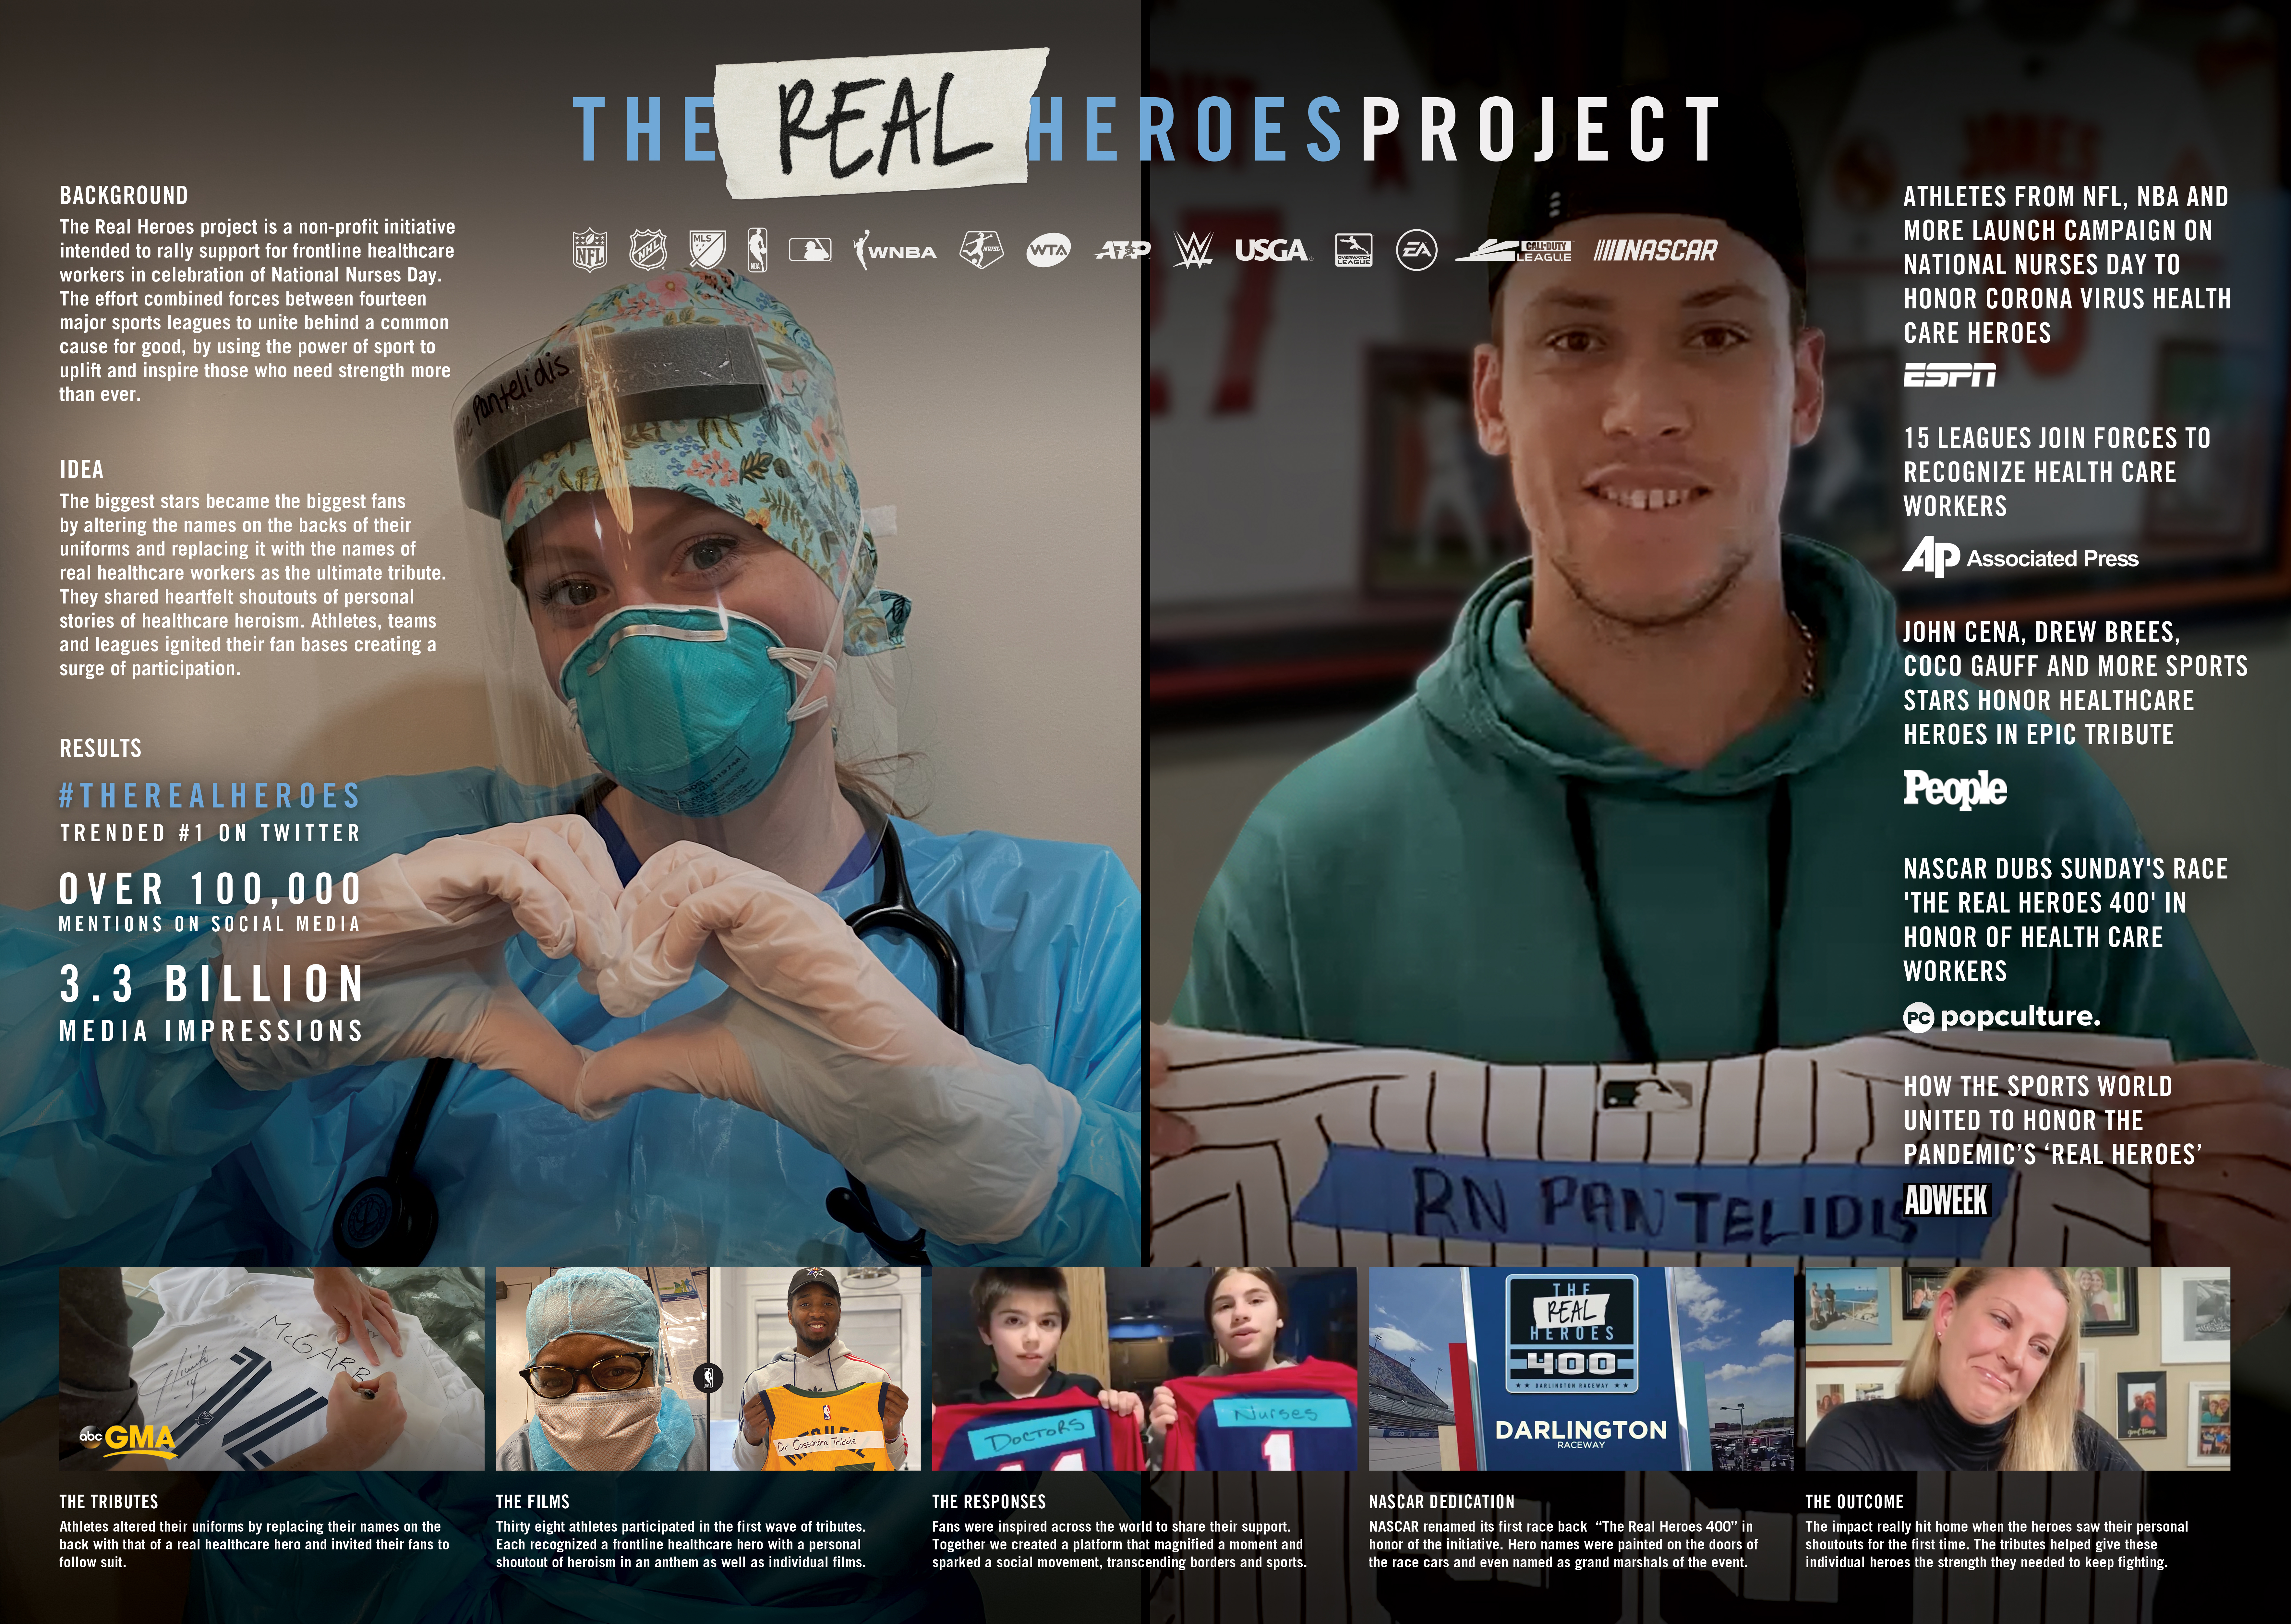 photo of the RealHeroes Project